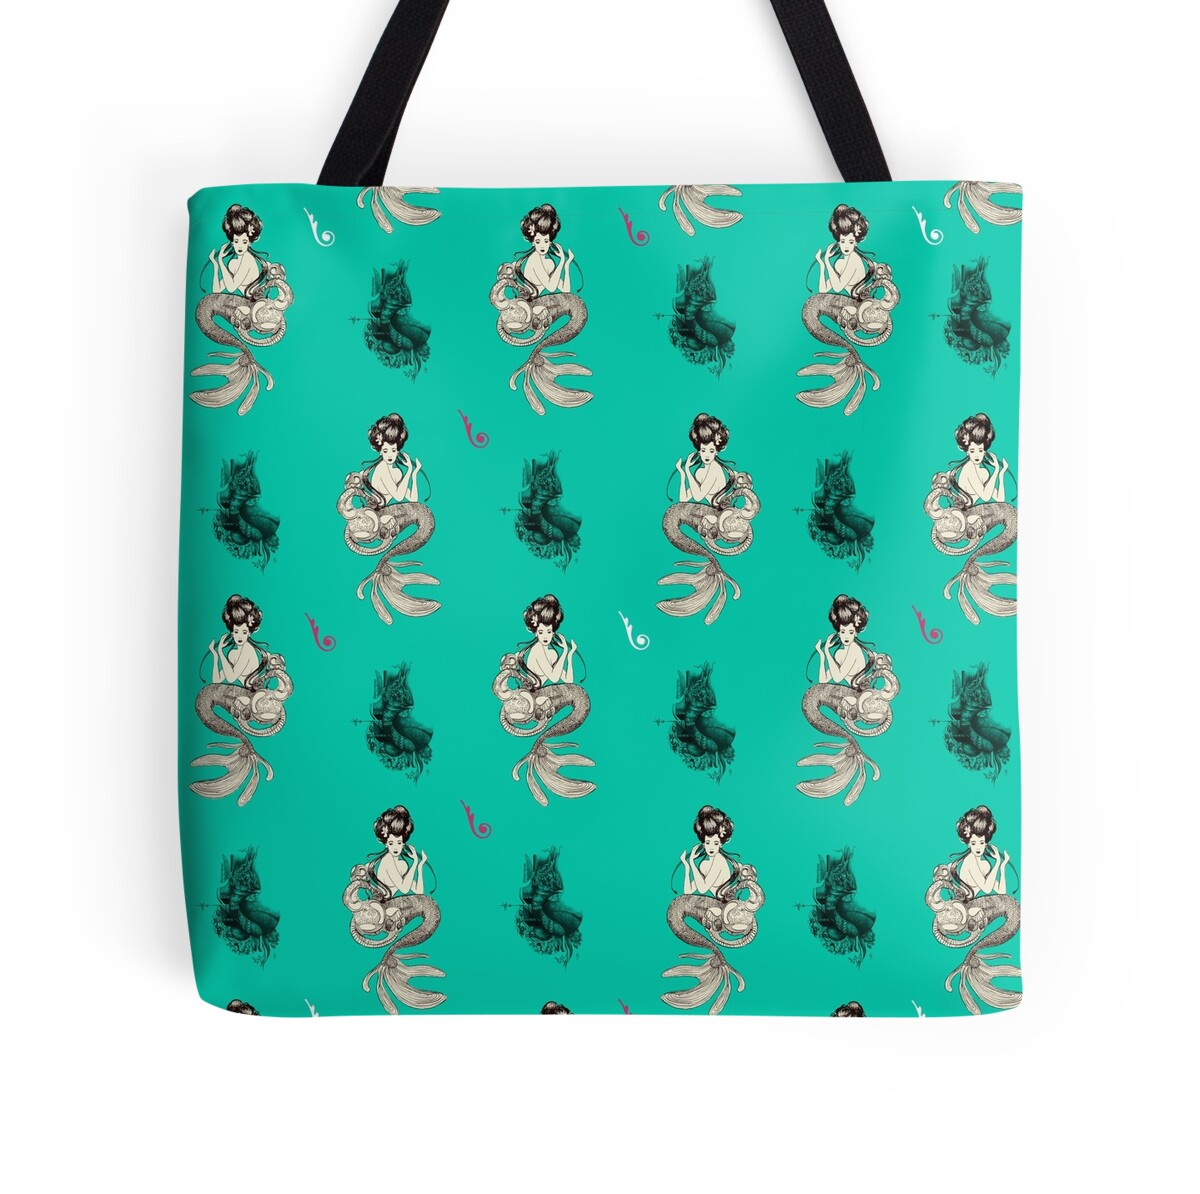 Quot Mermaid Quot Tote Bags By Lenadesigner Redbubble